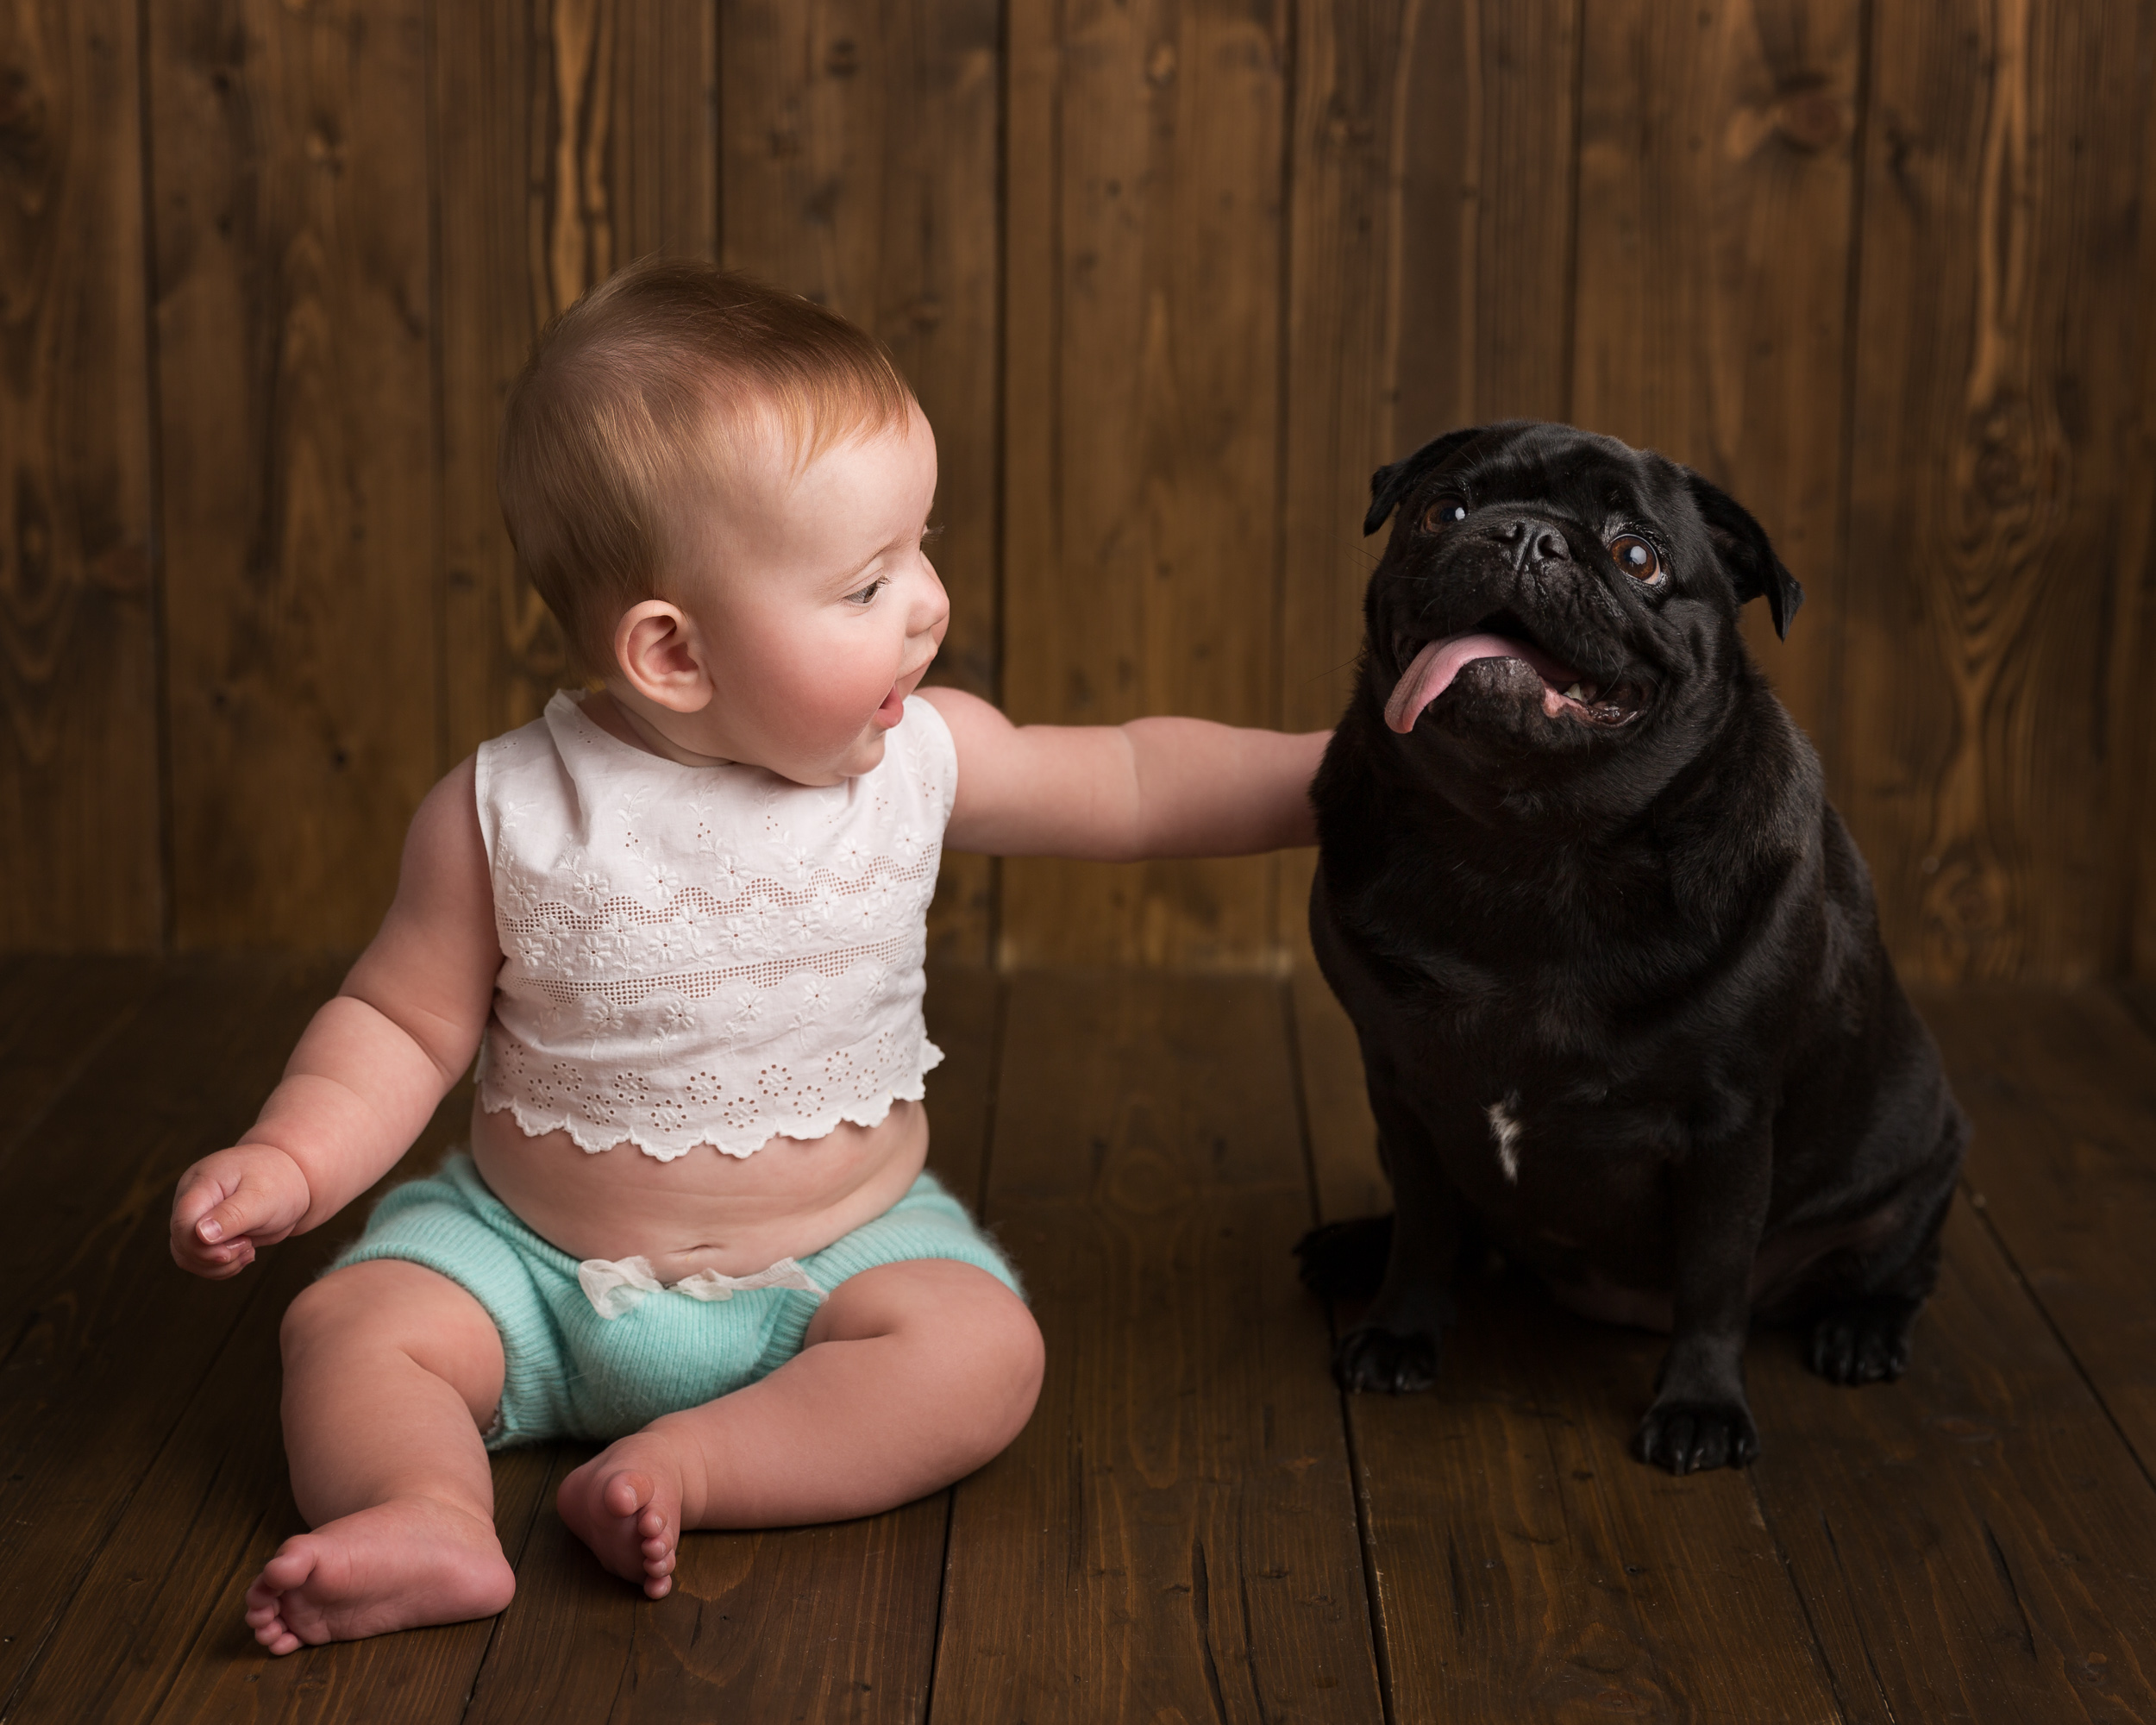 6 month baby girl with her pet pug taken during a milestone portrait session in Sandbach, Cheshire